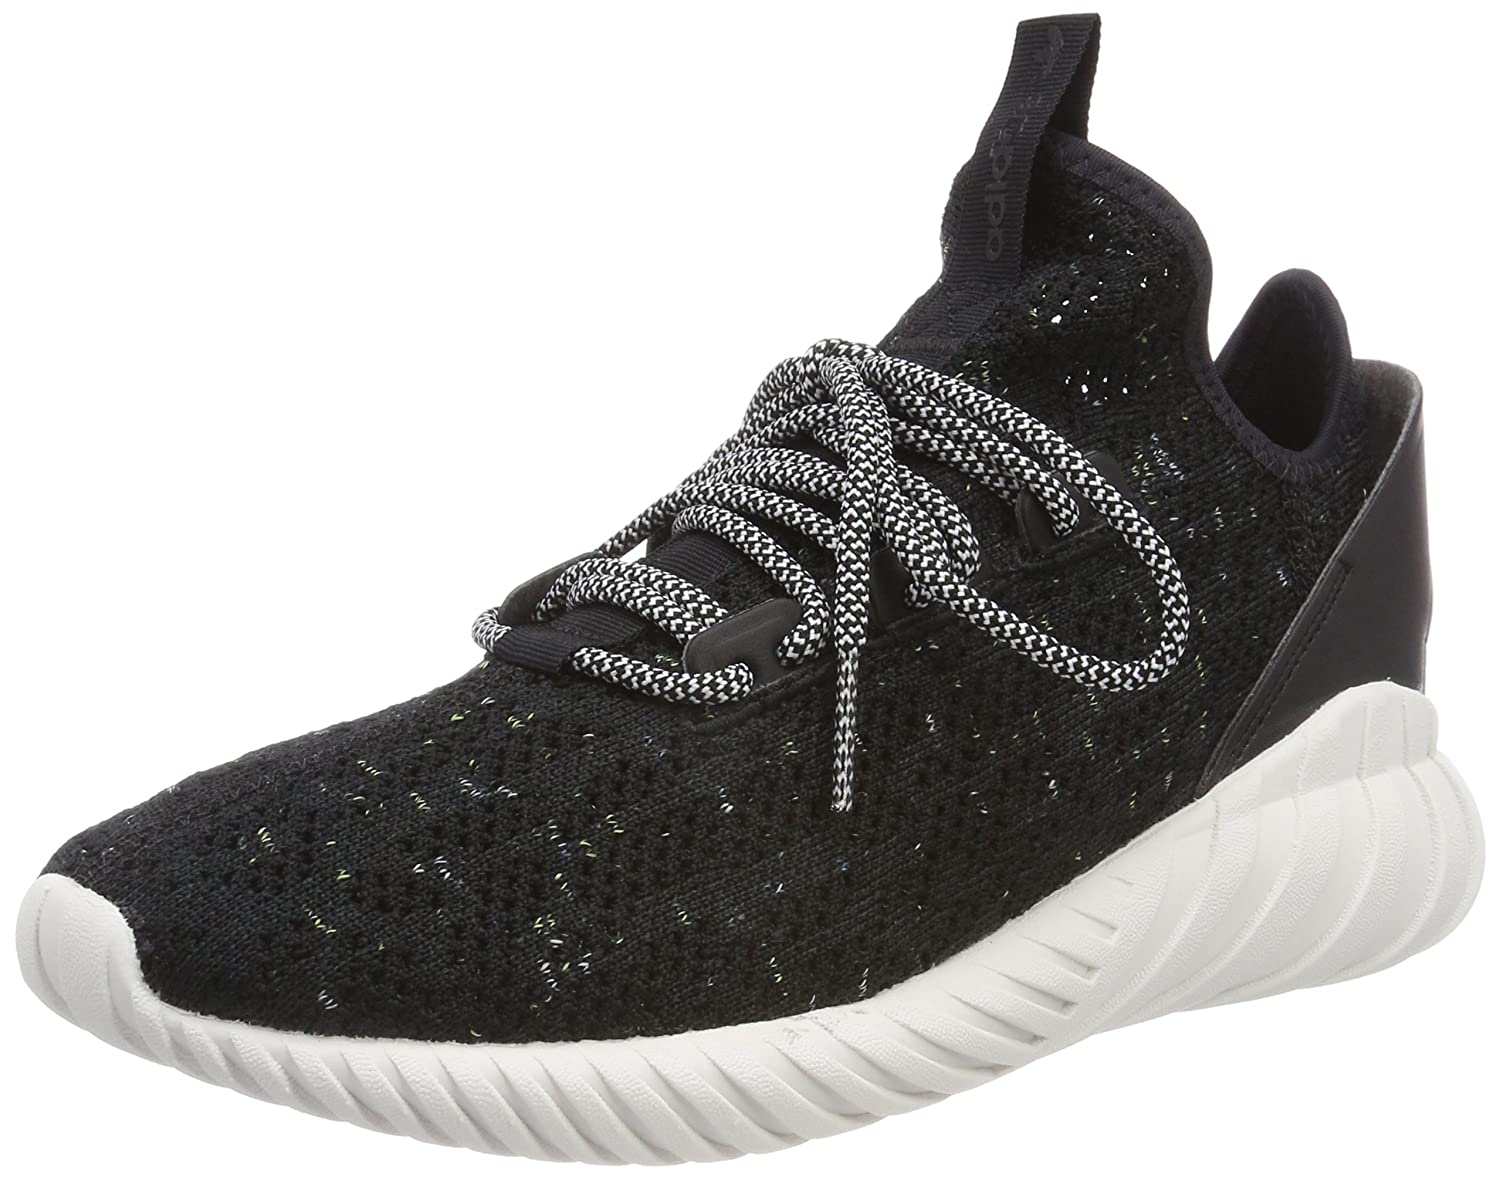 competitive price 2b28d b603e Amazon.com | Adidas Tubular Doom Sock Primeknit Mens ...